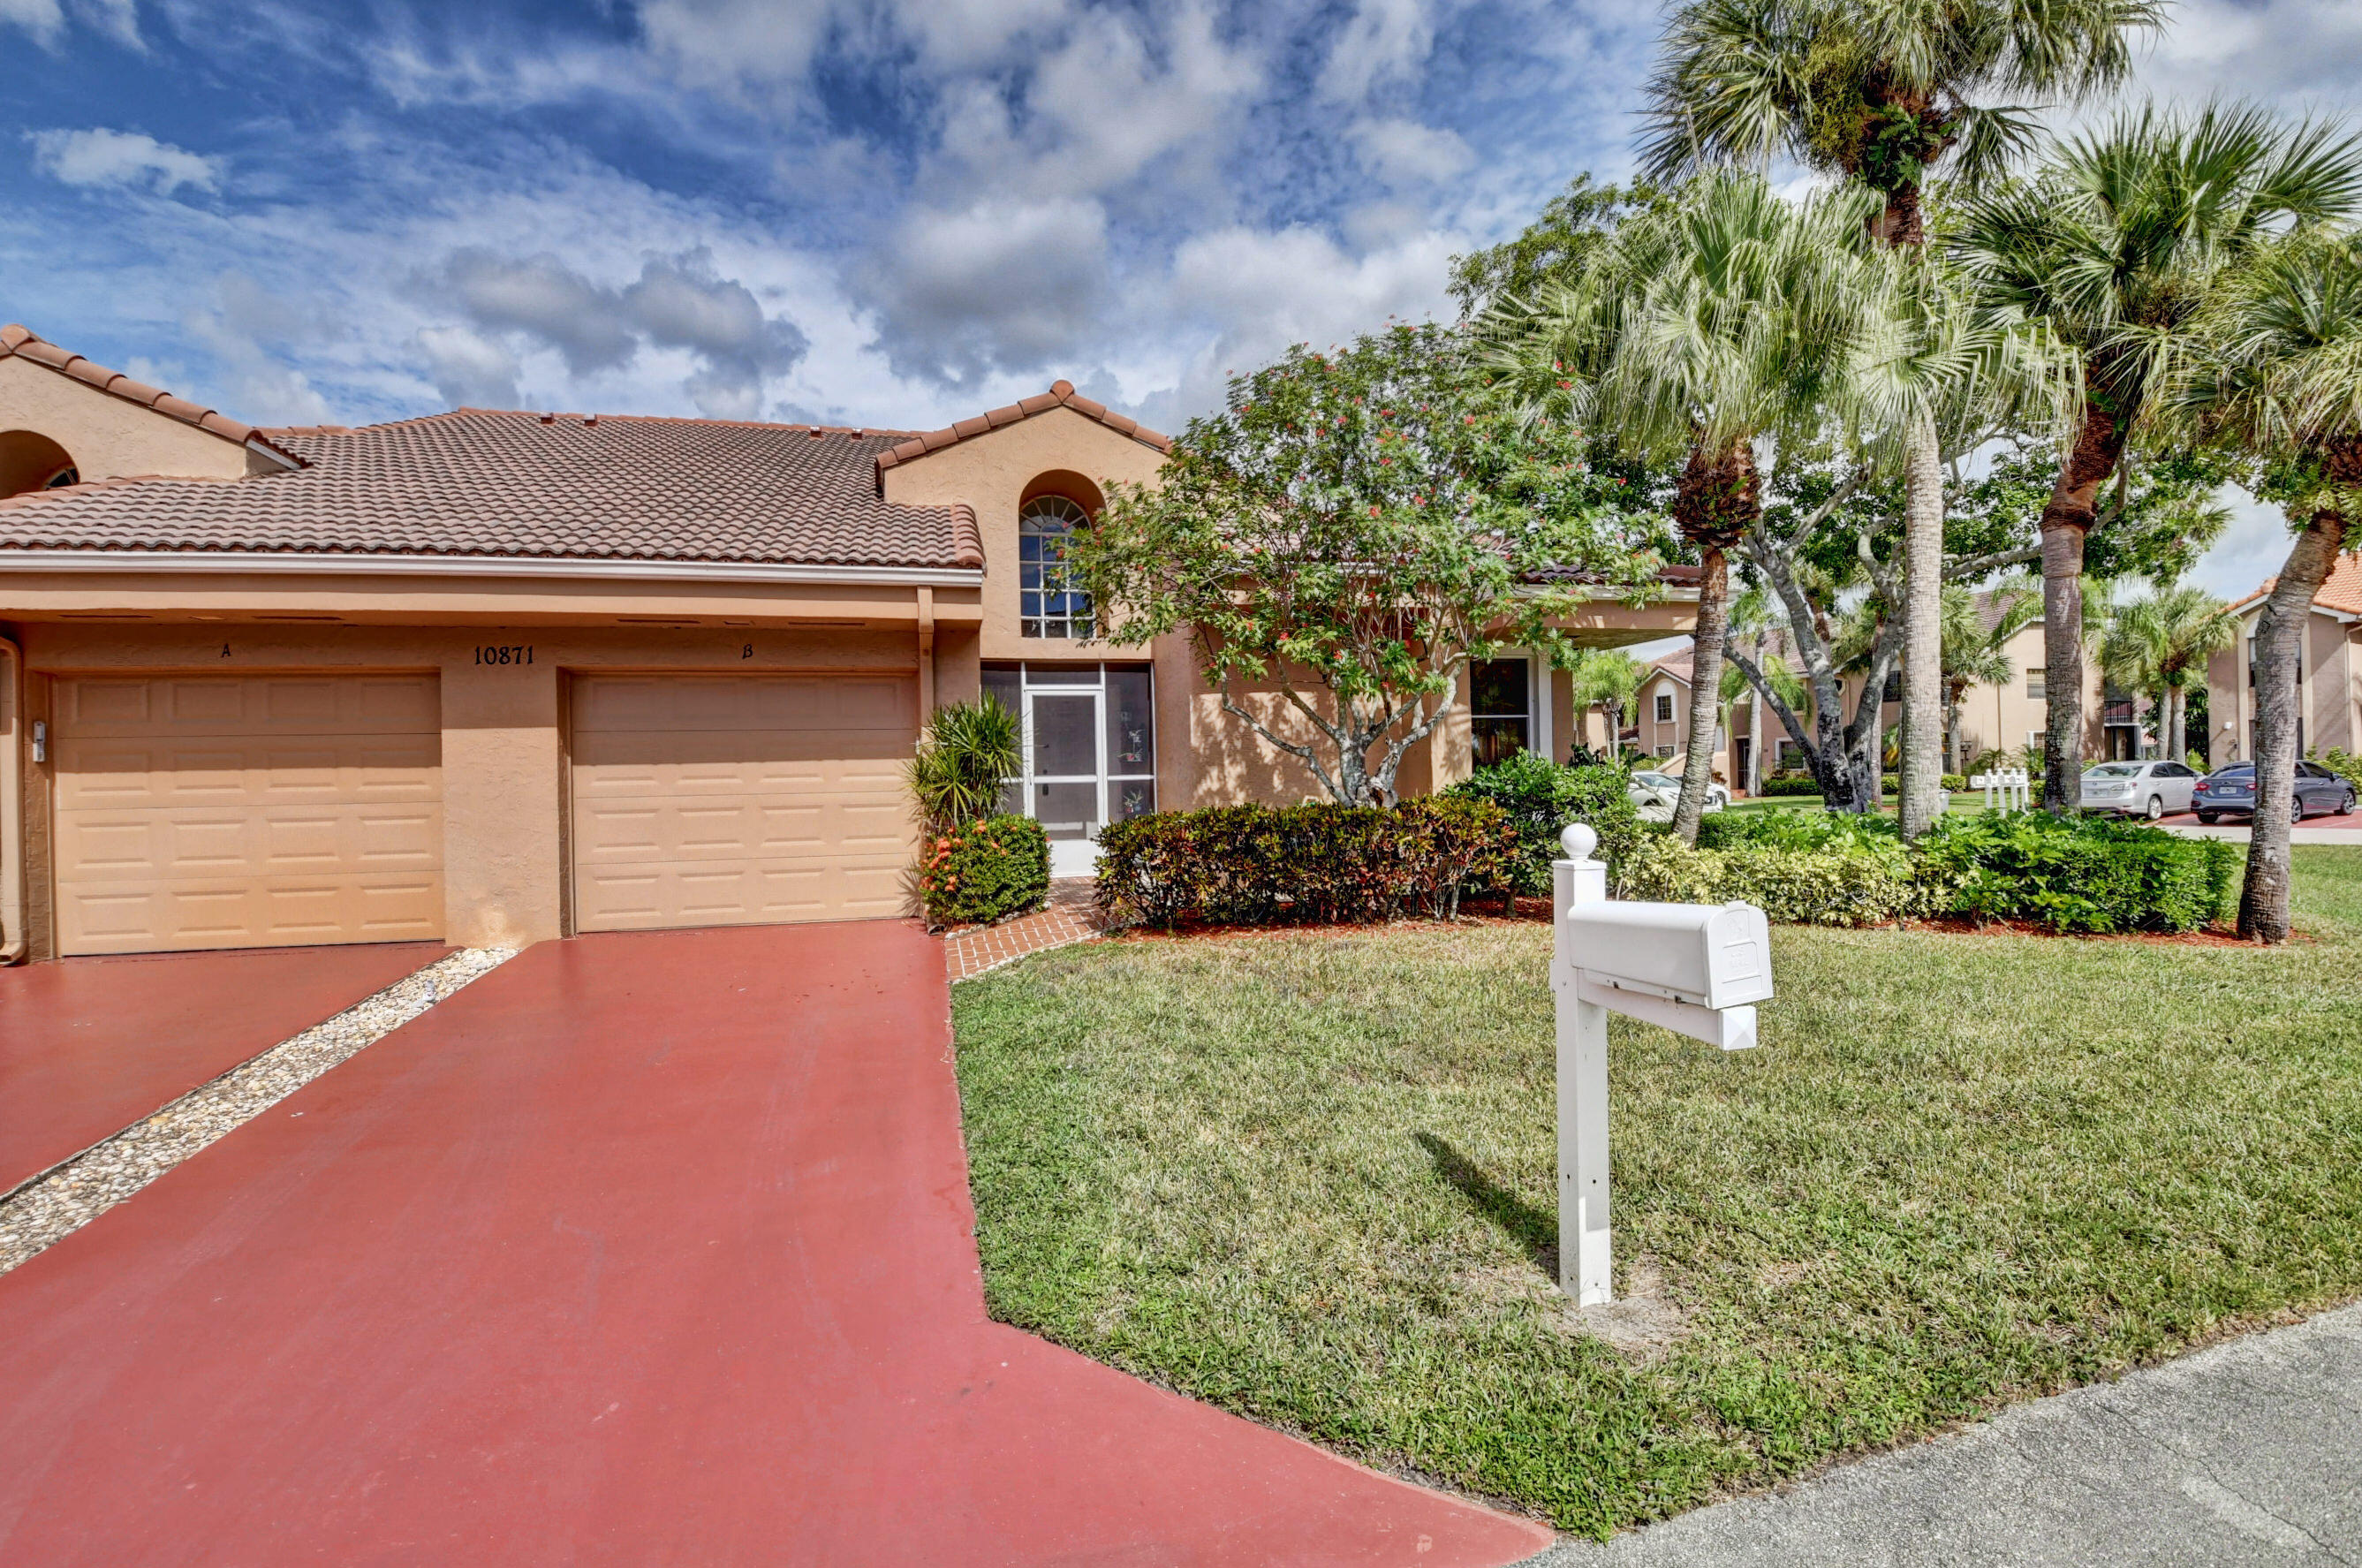 Home for sale in Sweetwater , Boca Chase Boca Raton Florida